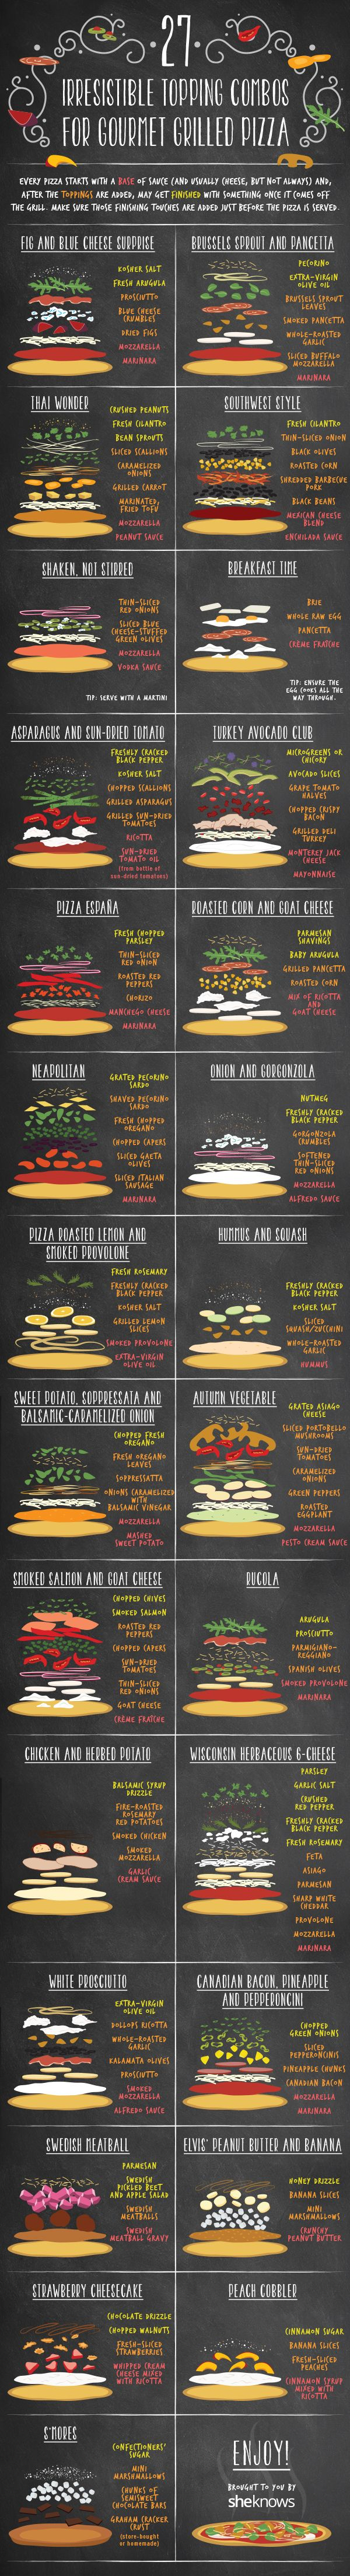 27 Irresistible topping combos for the best grilled pizza (INFOGRAPHIC) - Illustrations and design made for SheKnows.com